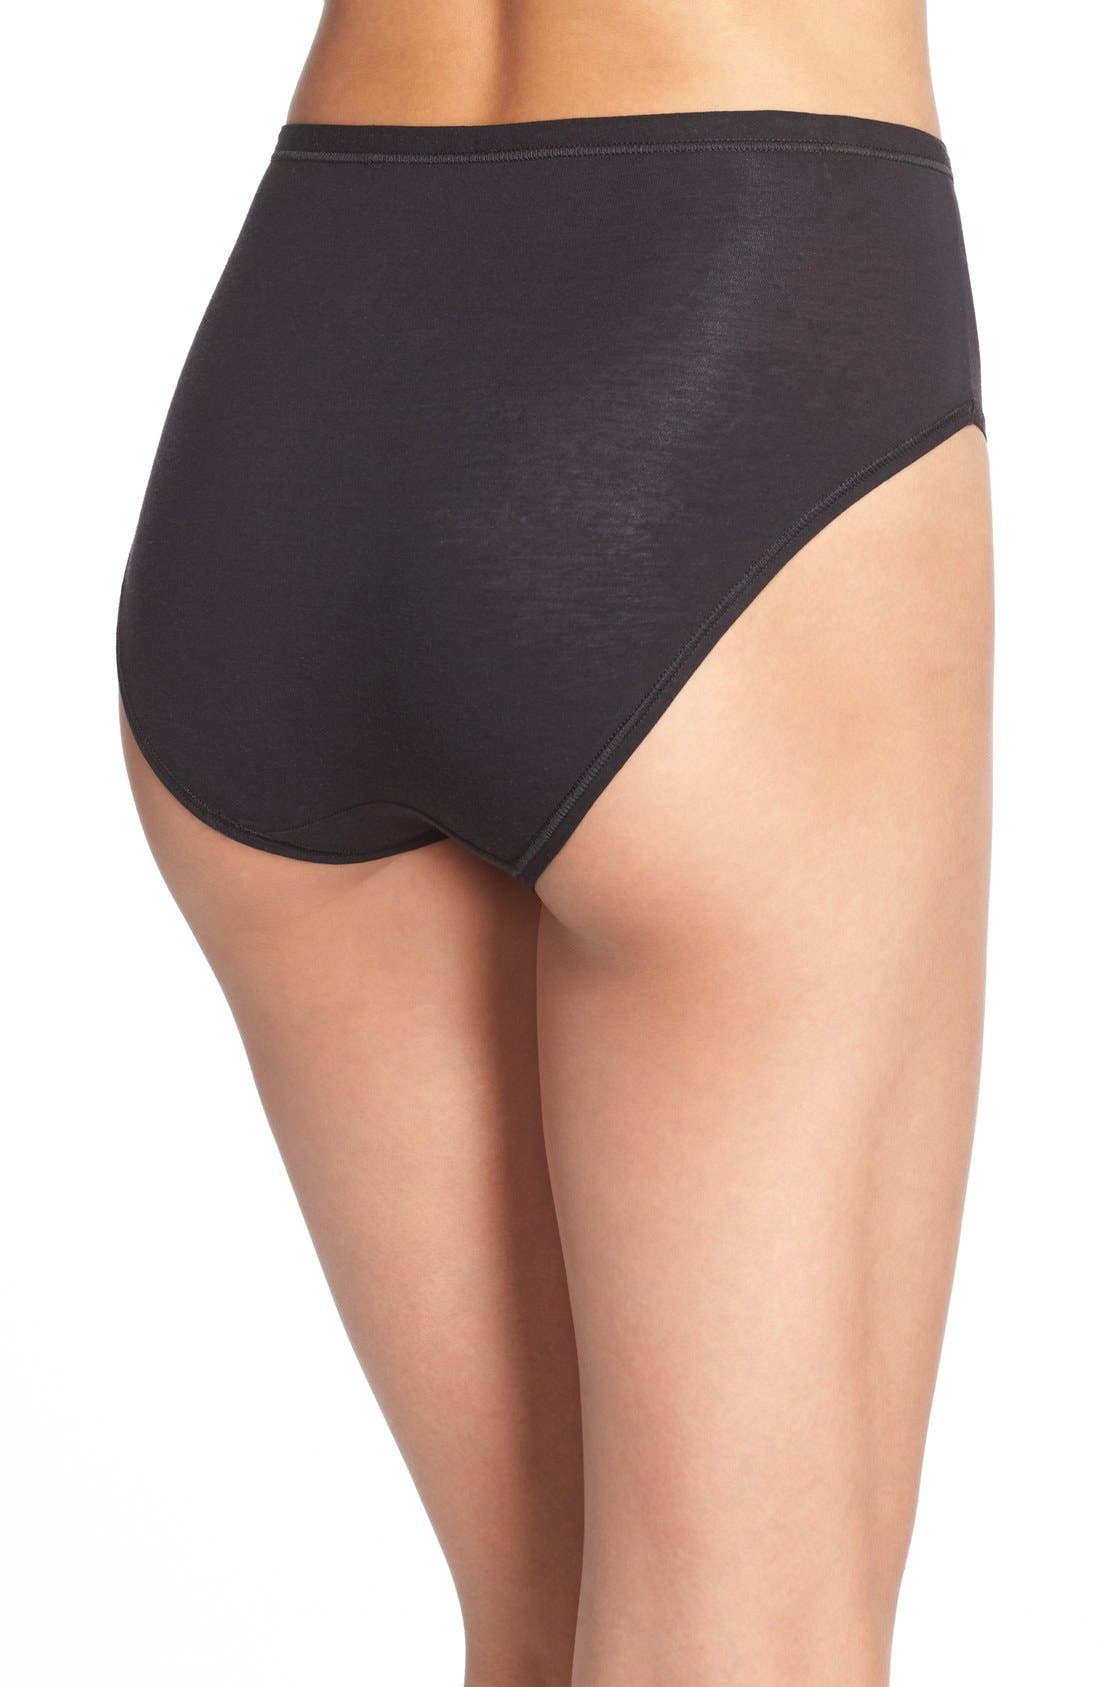 Alternate Image 2  - Wacoal B Fitting High Cut Briefs (3 for $39)